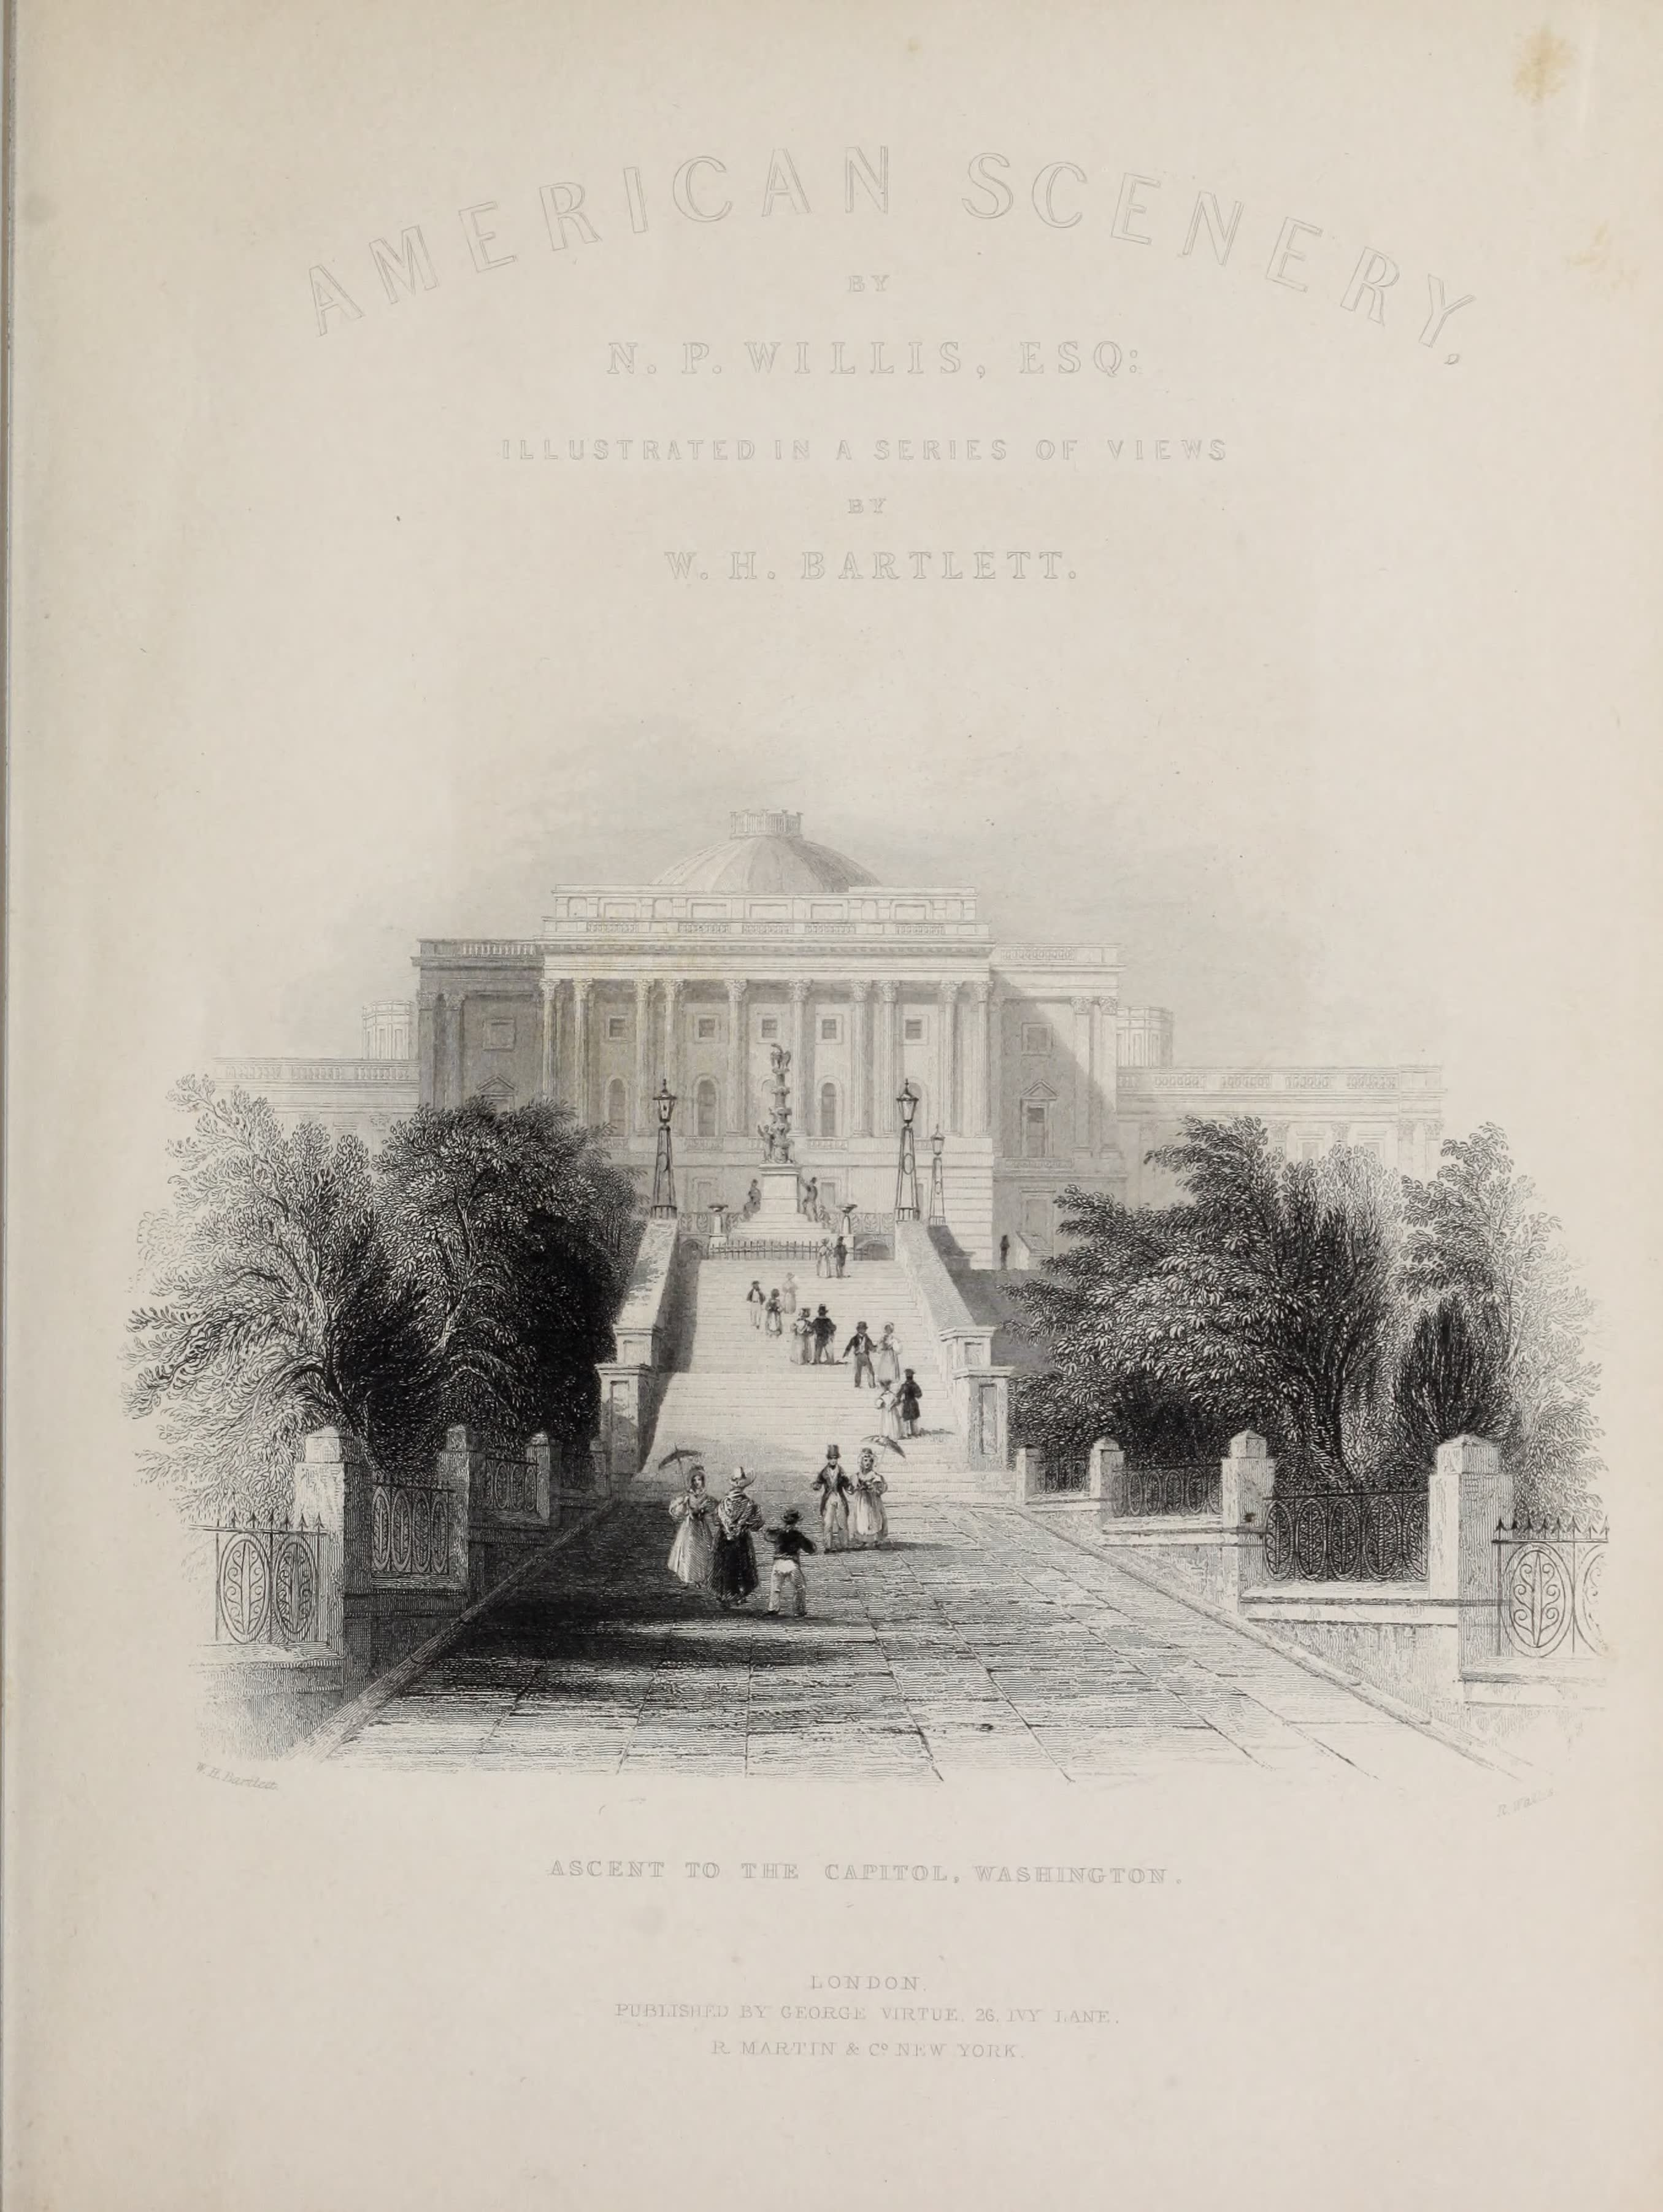 American Scenery Vol. I - Illustrated Title Page (1840)